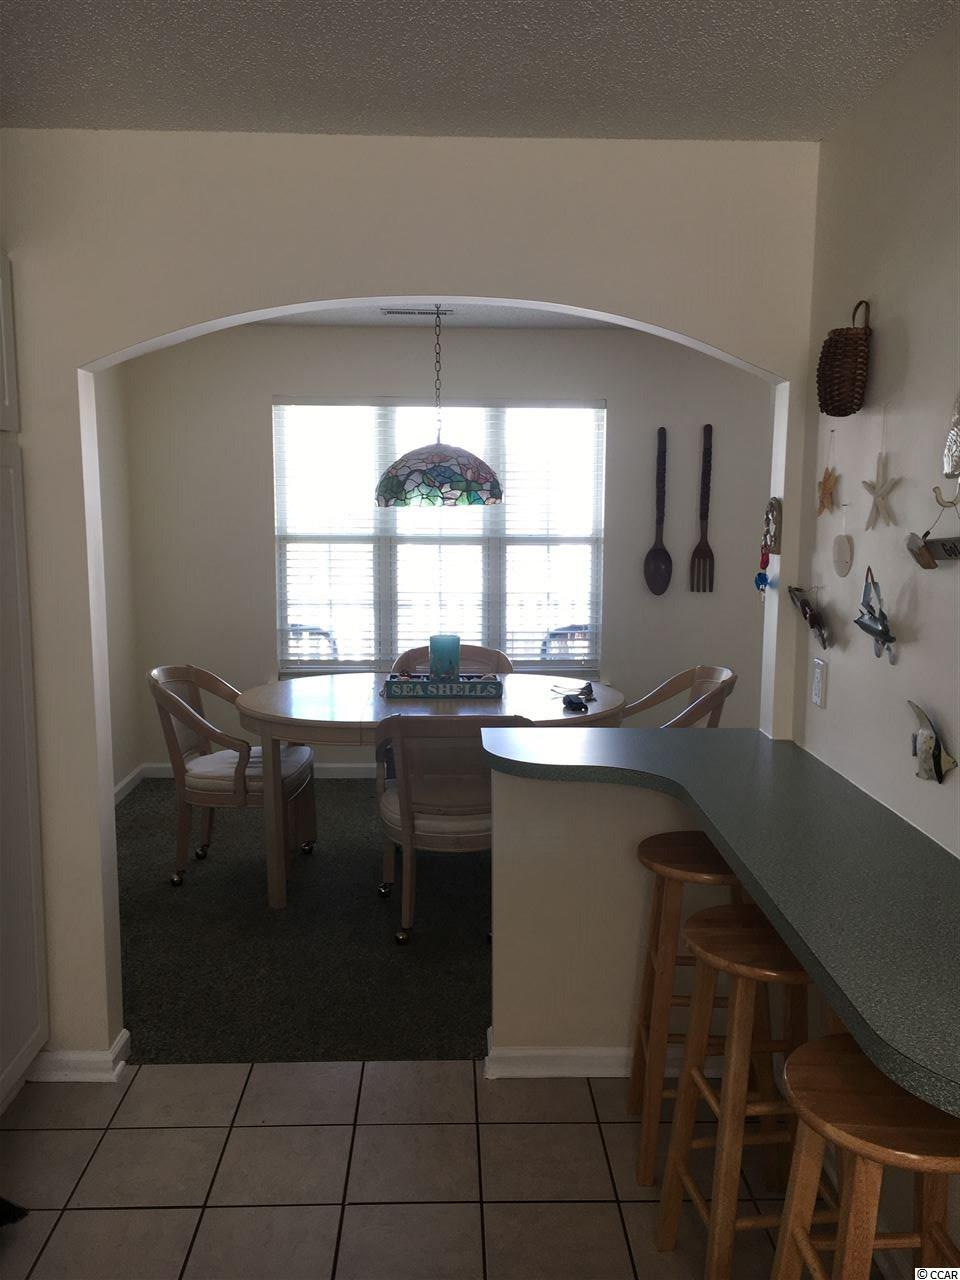 Additional photo for property listing at 203 Millwood Drive 203 Millwood Drive Surfside Beach, South Carolina 29575 United States